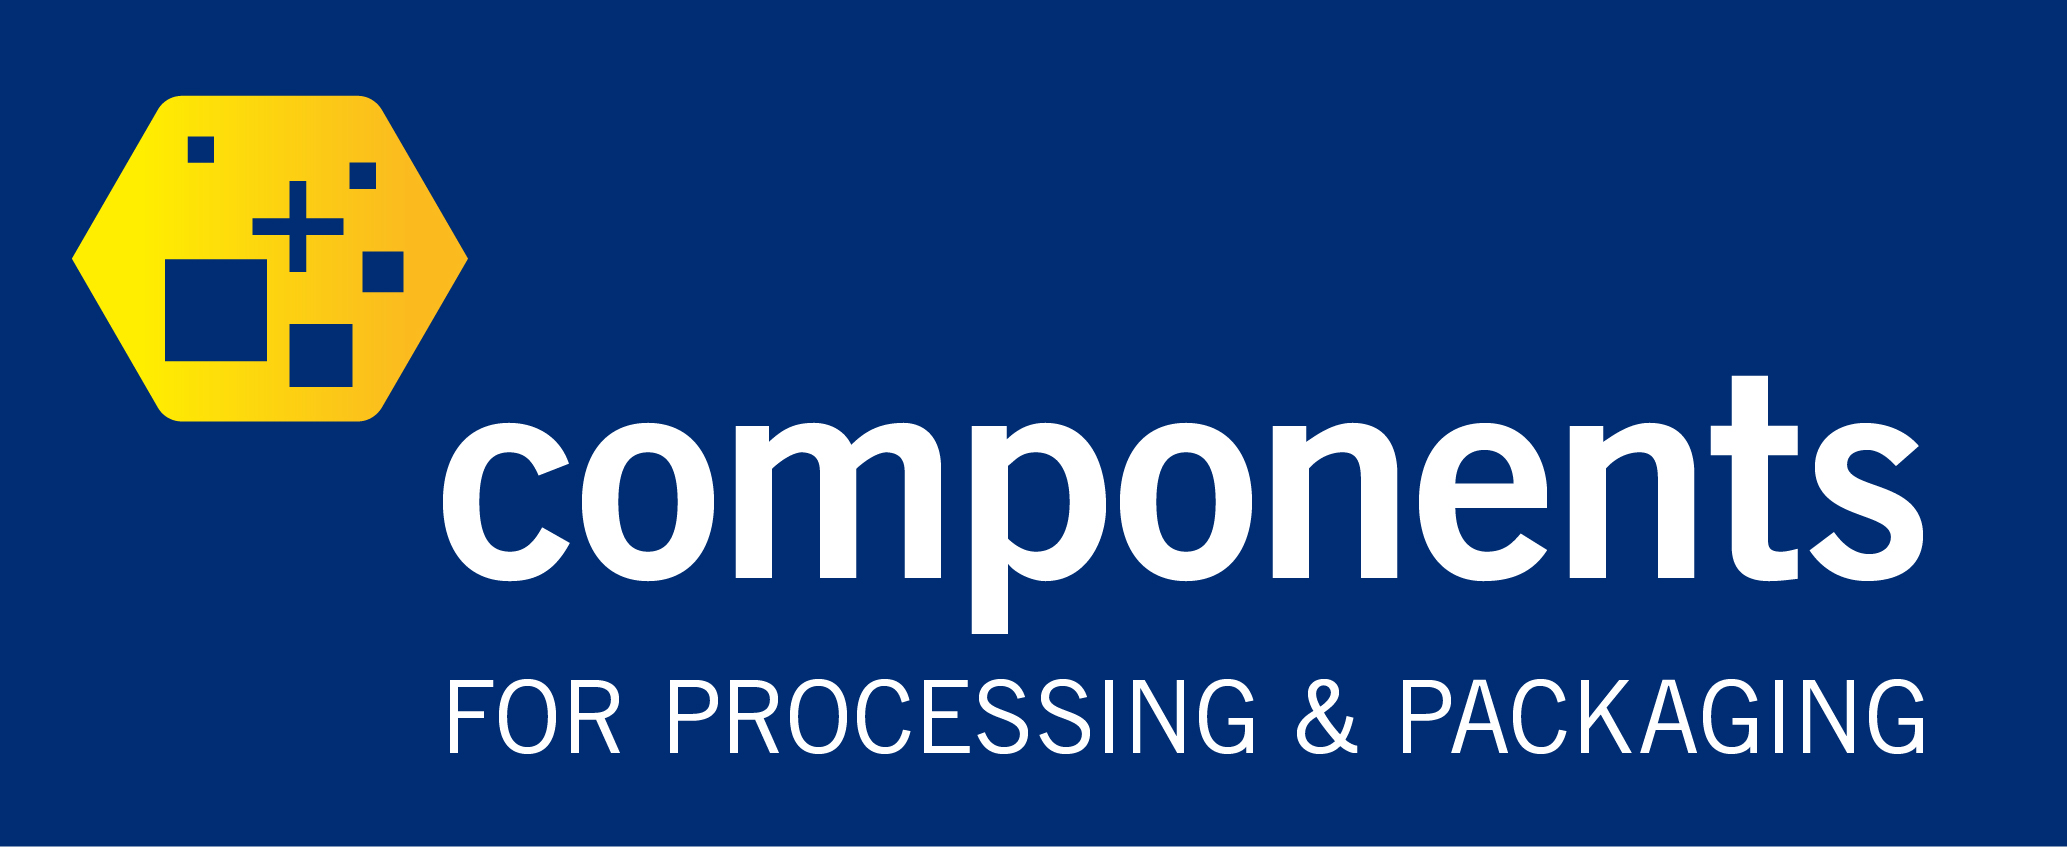 interpack / components for processing and packaging 2021